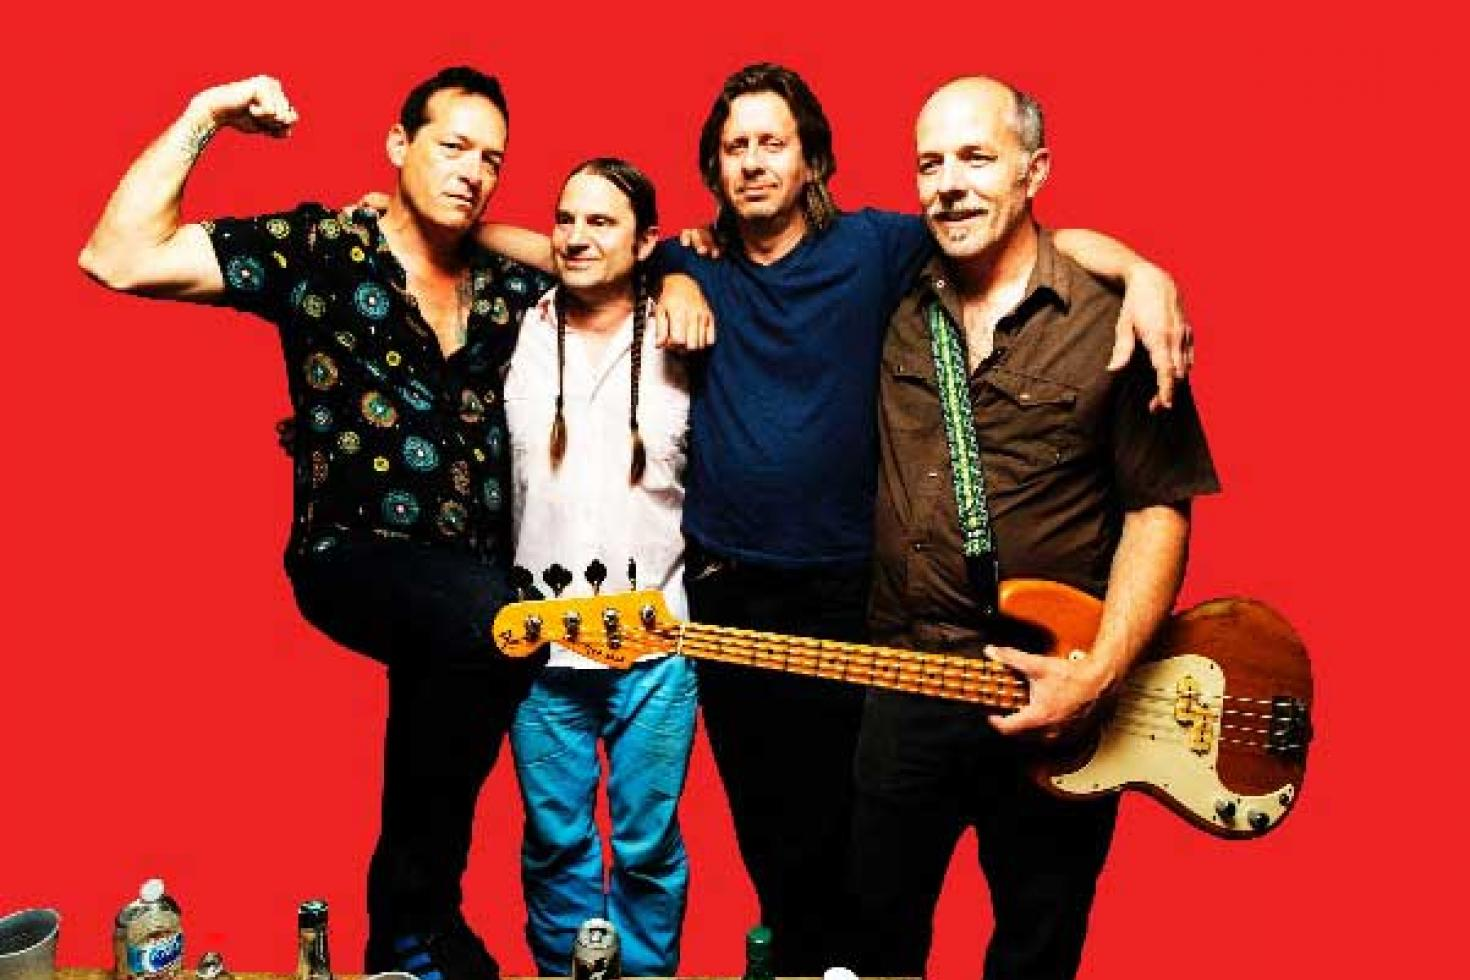 Hot Snakes share video for new song 'I Shall Be Free' animated by John Reis' daughter